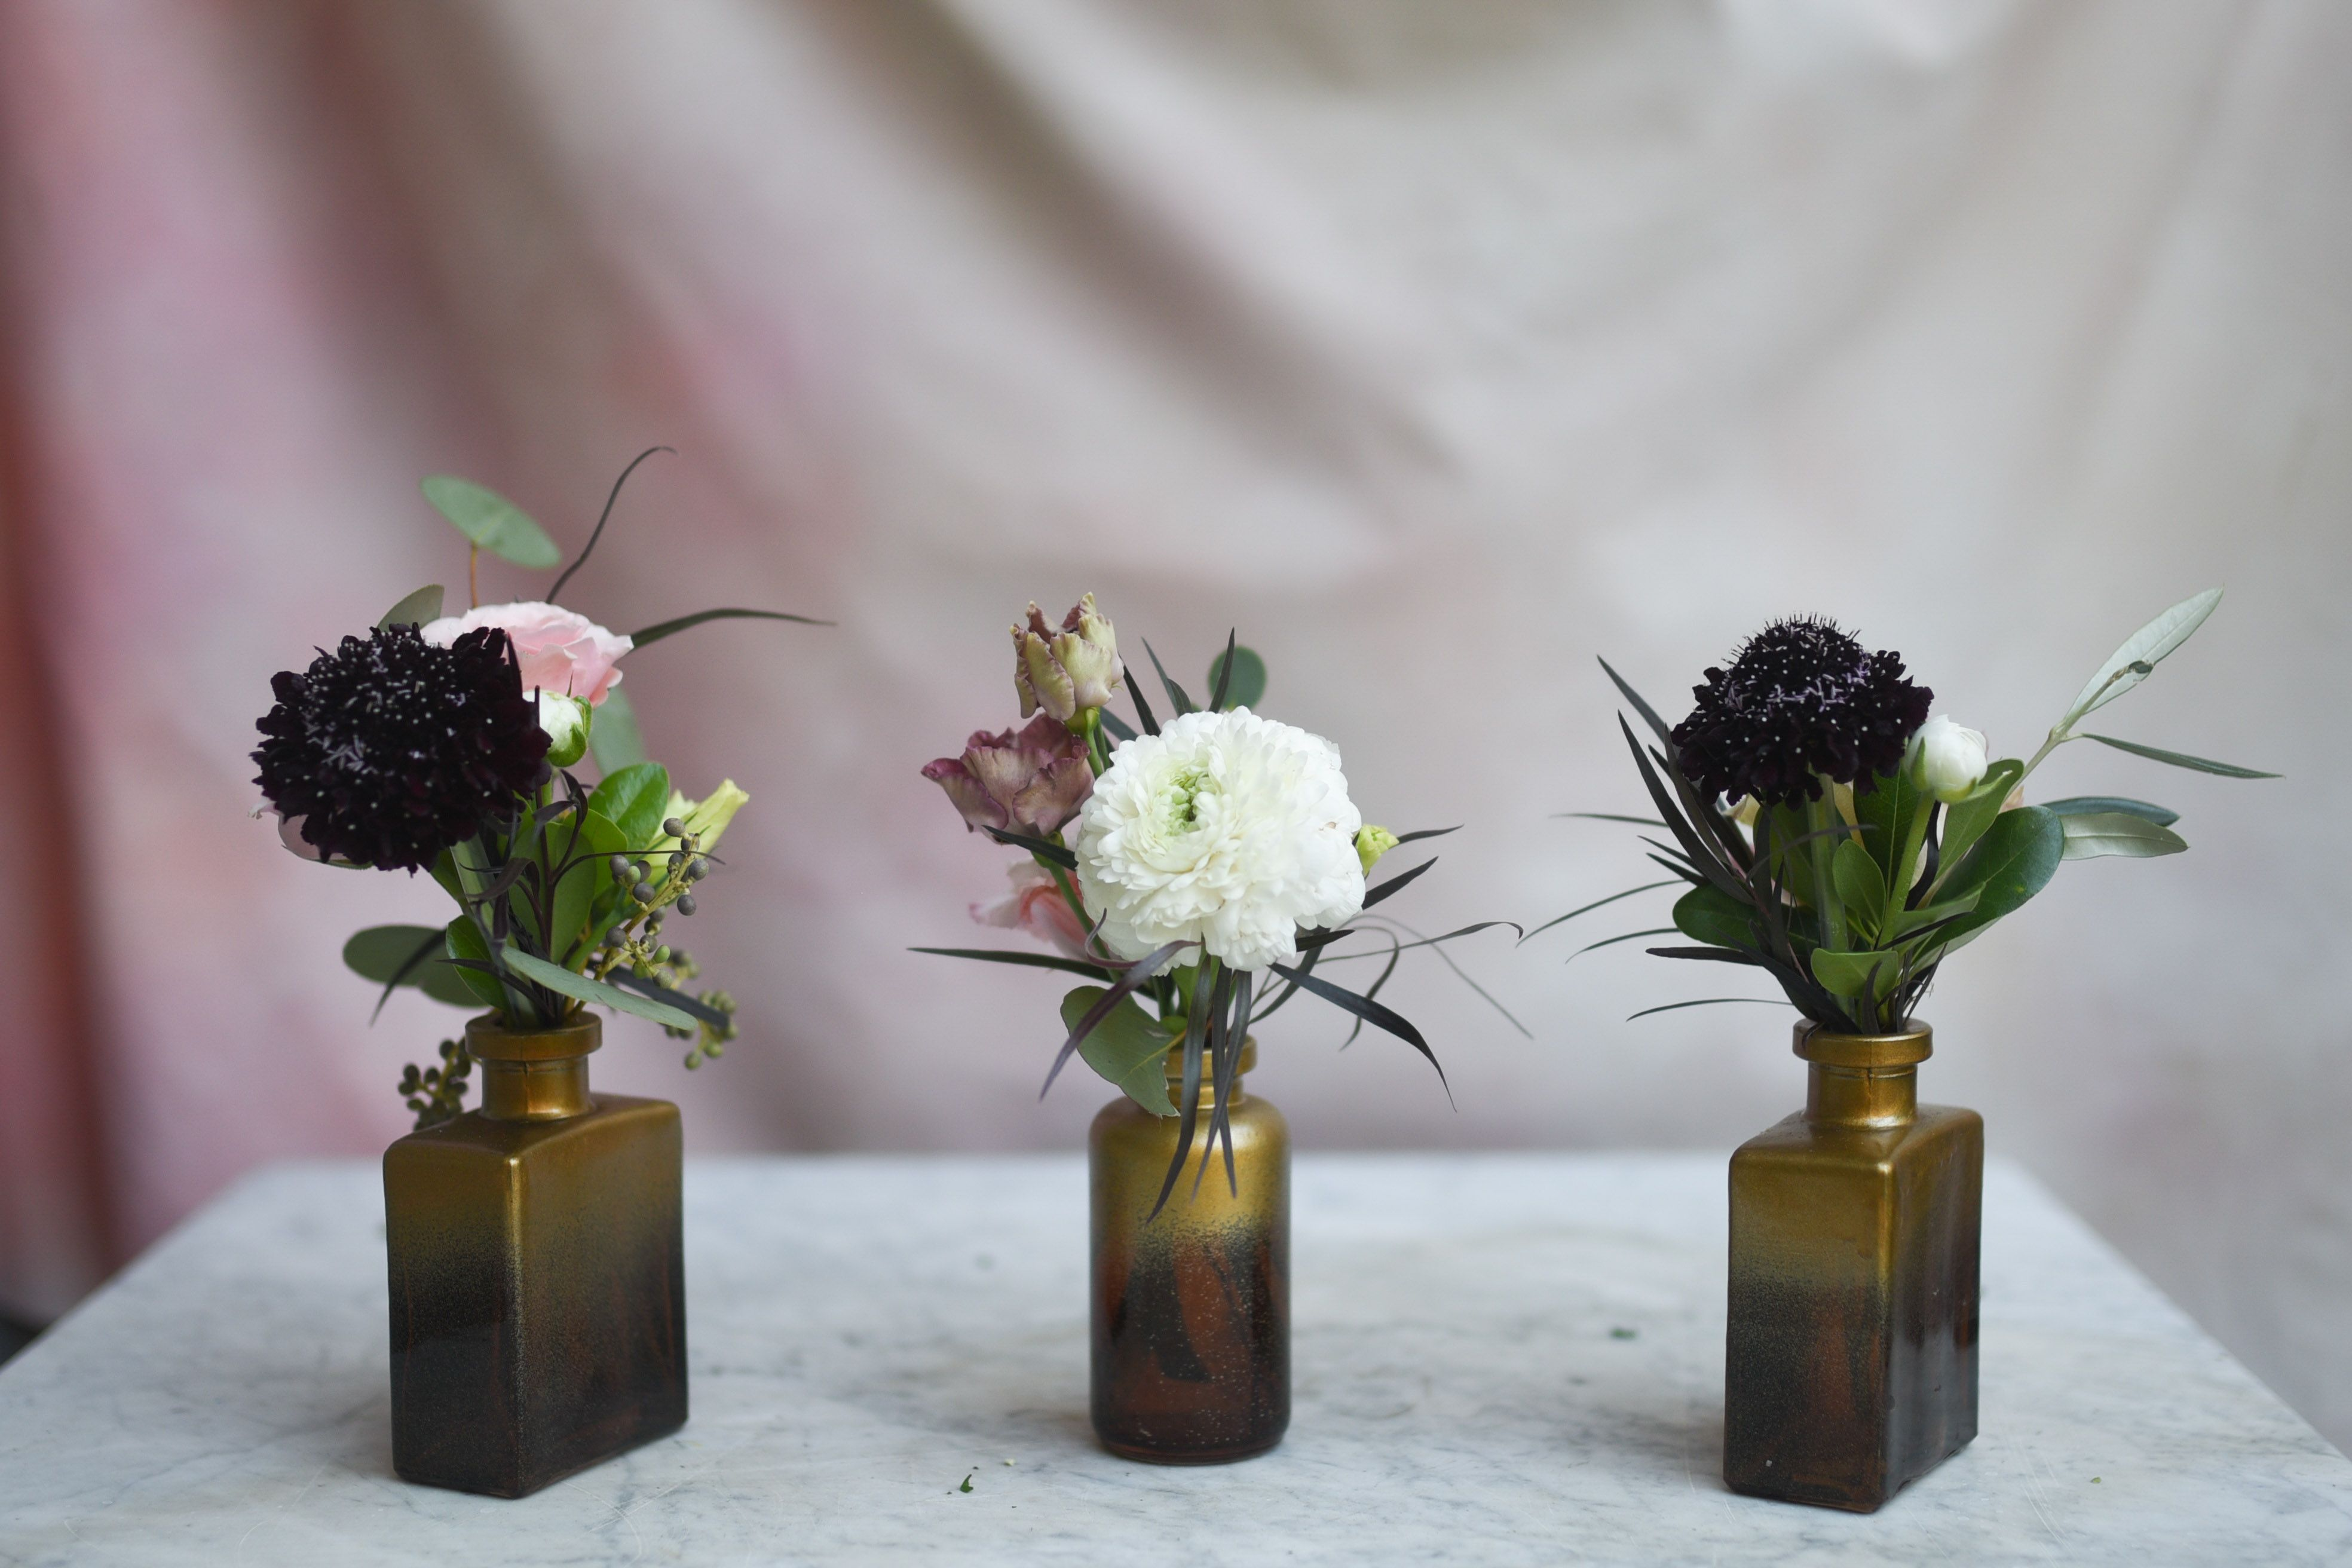 Gold Bud Vases With Dark Accents In 2020 Bud Vases Arrangements Bud Vases Vase Arrangements